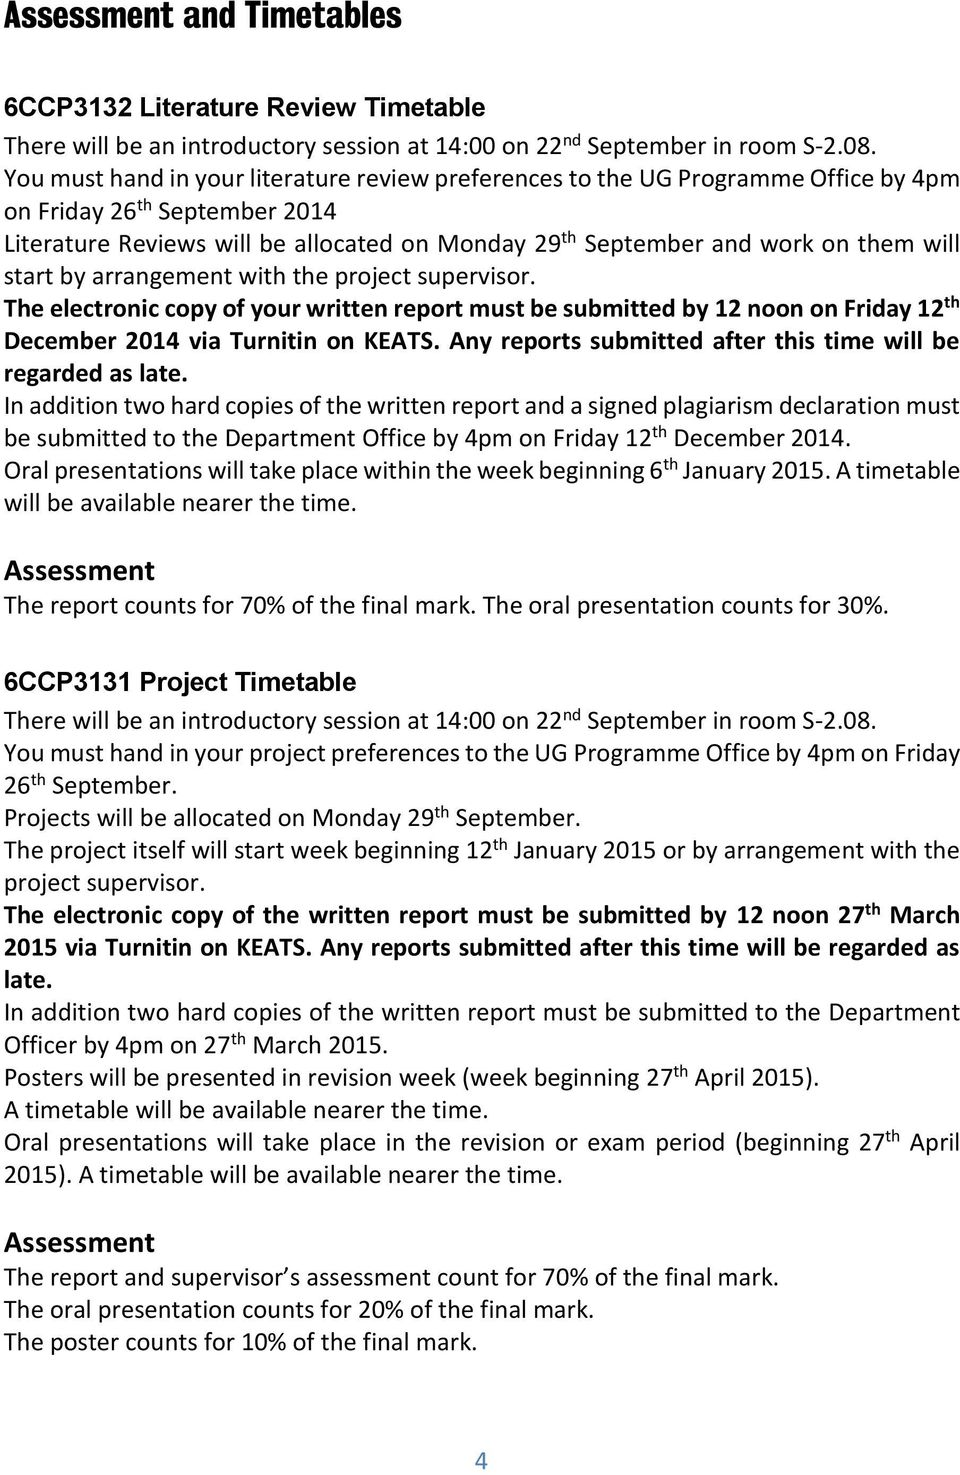 will start by arrangement with the project supervisor. The electronic copy of your written report must be submitted by 12 noon on Friday 12 th December 2014 via Turnitin on KEATS.